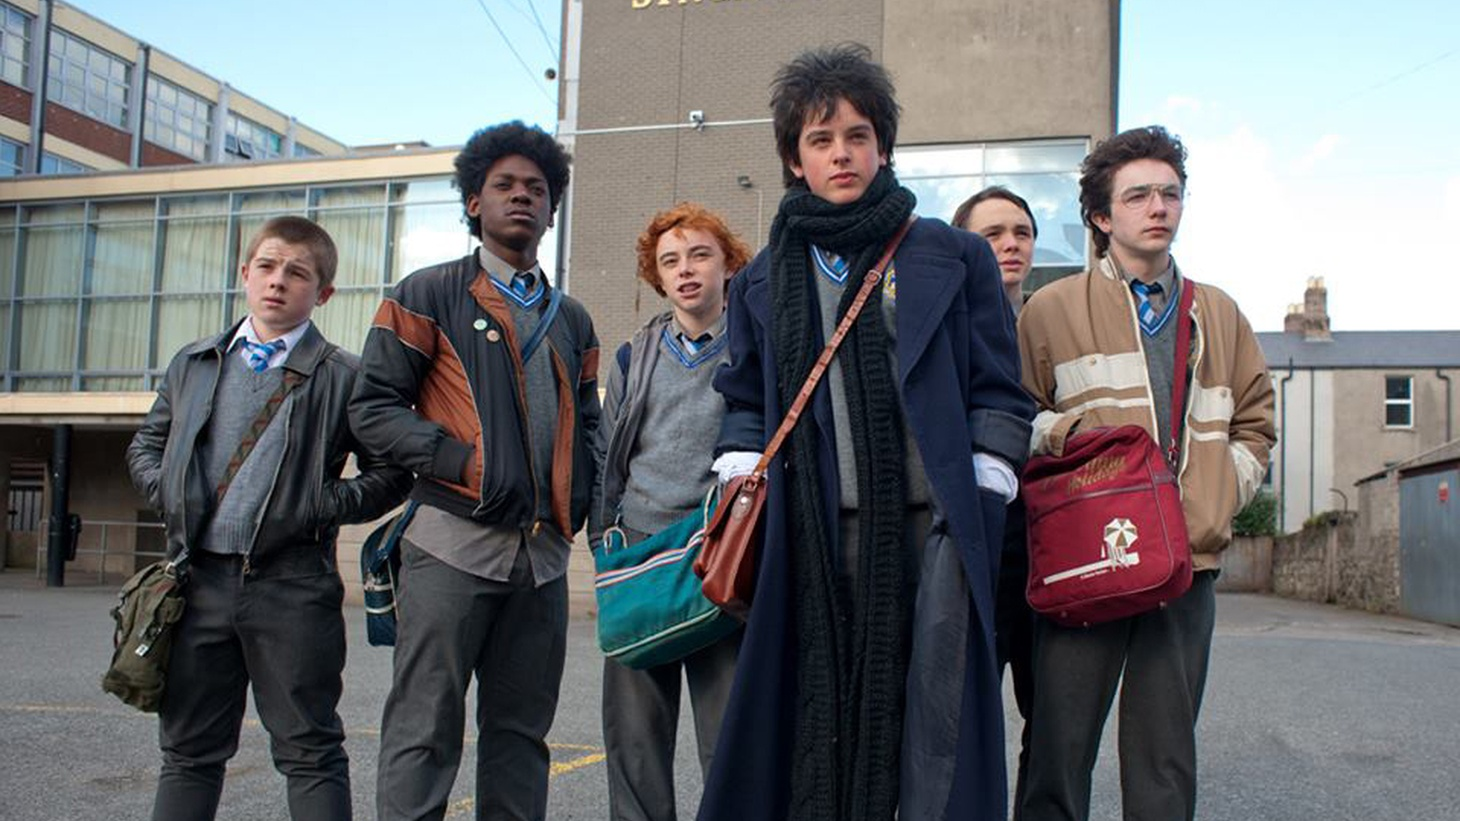 Nine years ago American audiences discovered the Irish film Once, and took it to their hearts. The magic is back in Sing Street, a coming-of-age comedy that's also concerned with making music, and downright lovable in its evocation of young love.